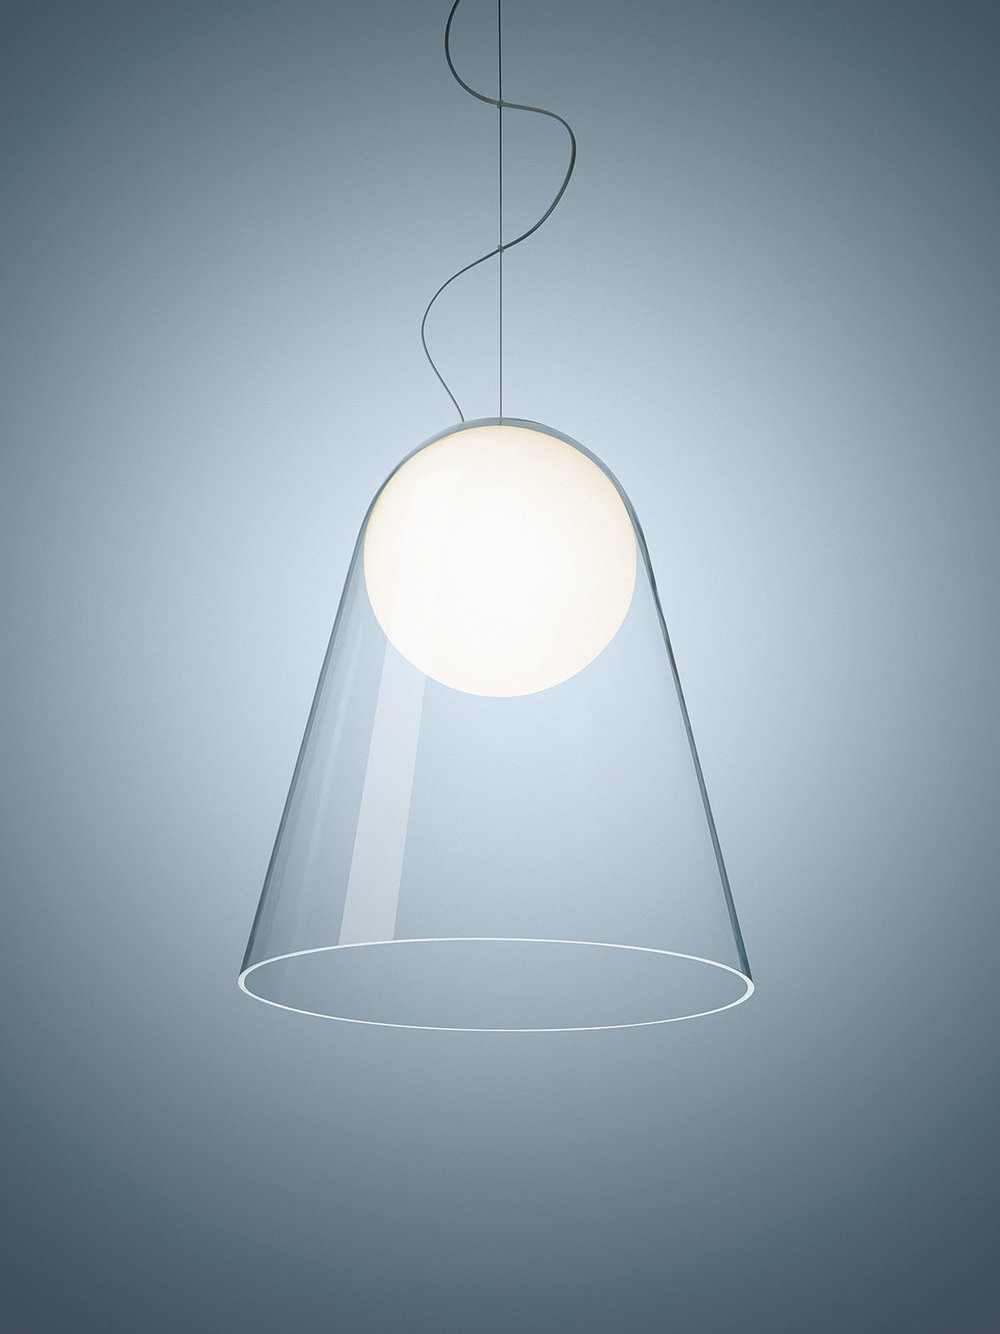 Foscarini_Satellight_1.jpg